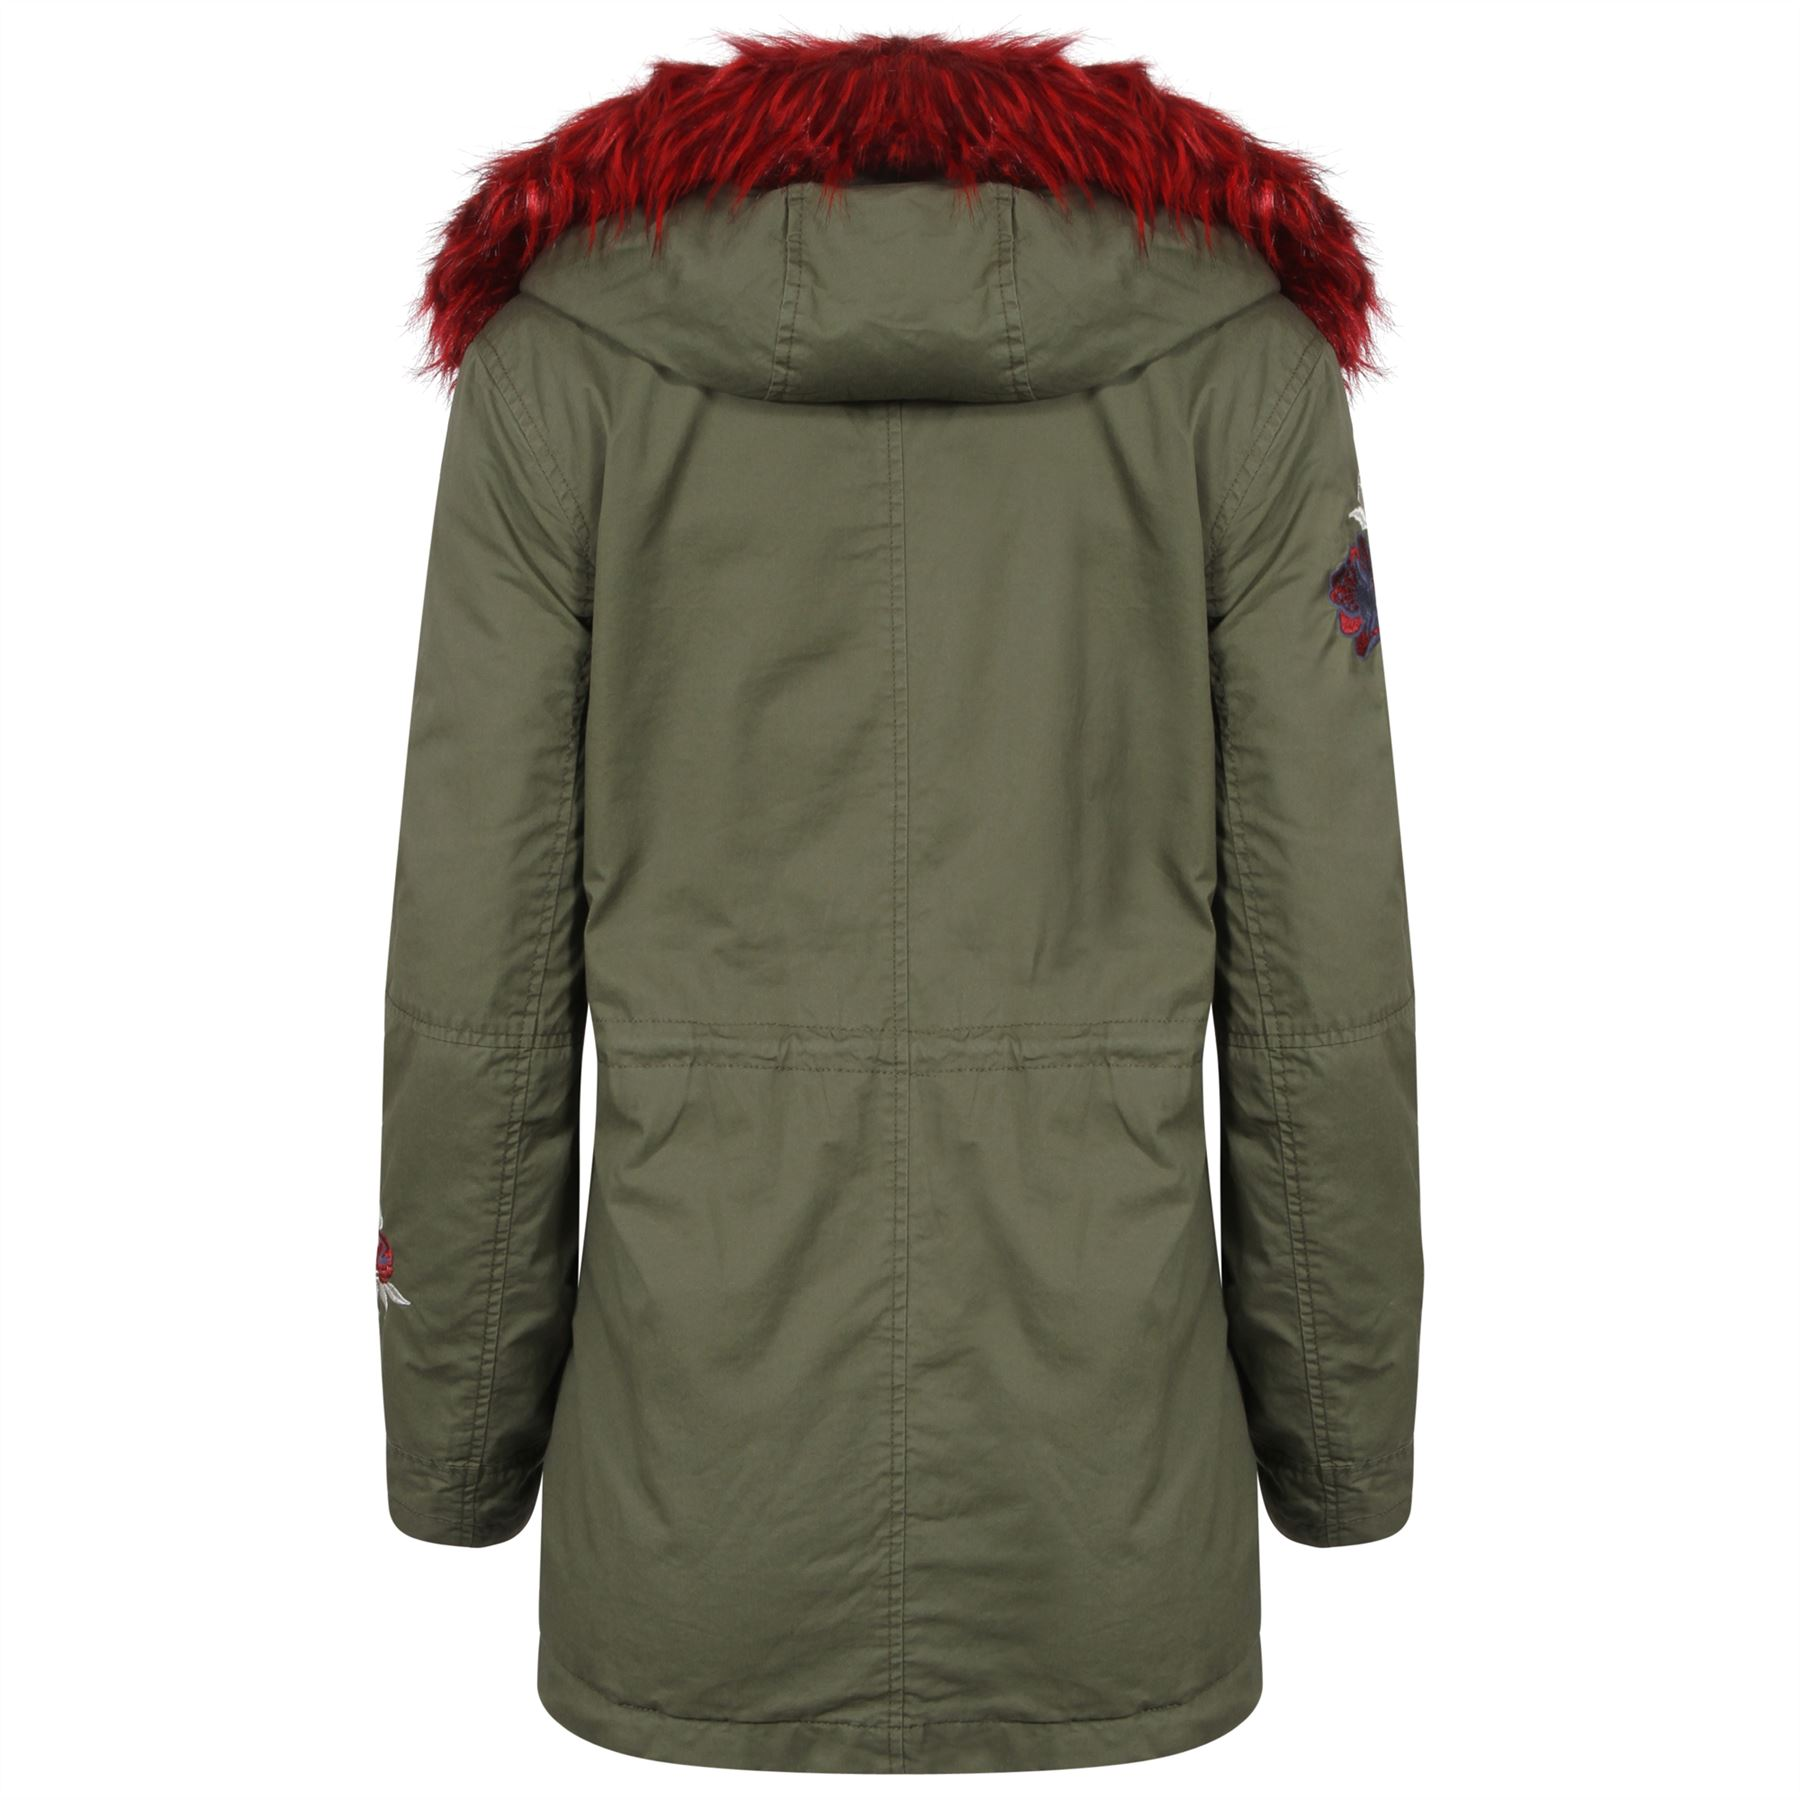 Coat 8 Parka Womens Flower Fur Faux 16 Uk Sizes Zip Hooded Embroidery Khaki Red Jacket t77Ugq